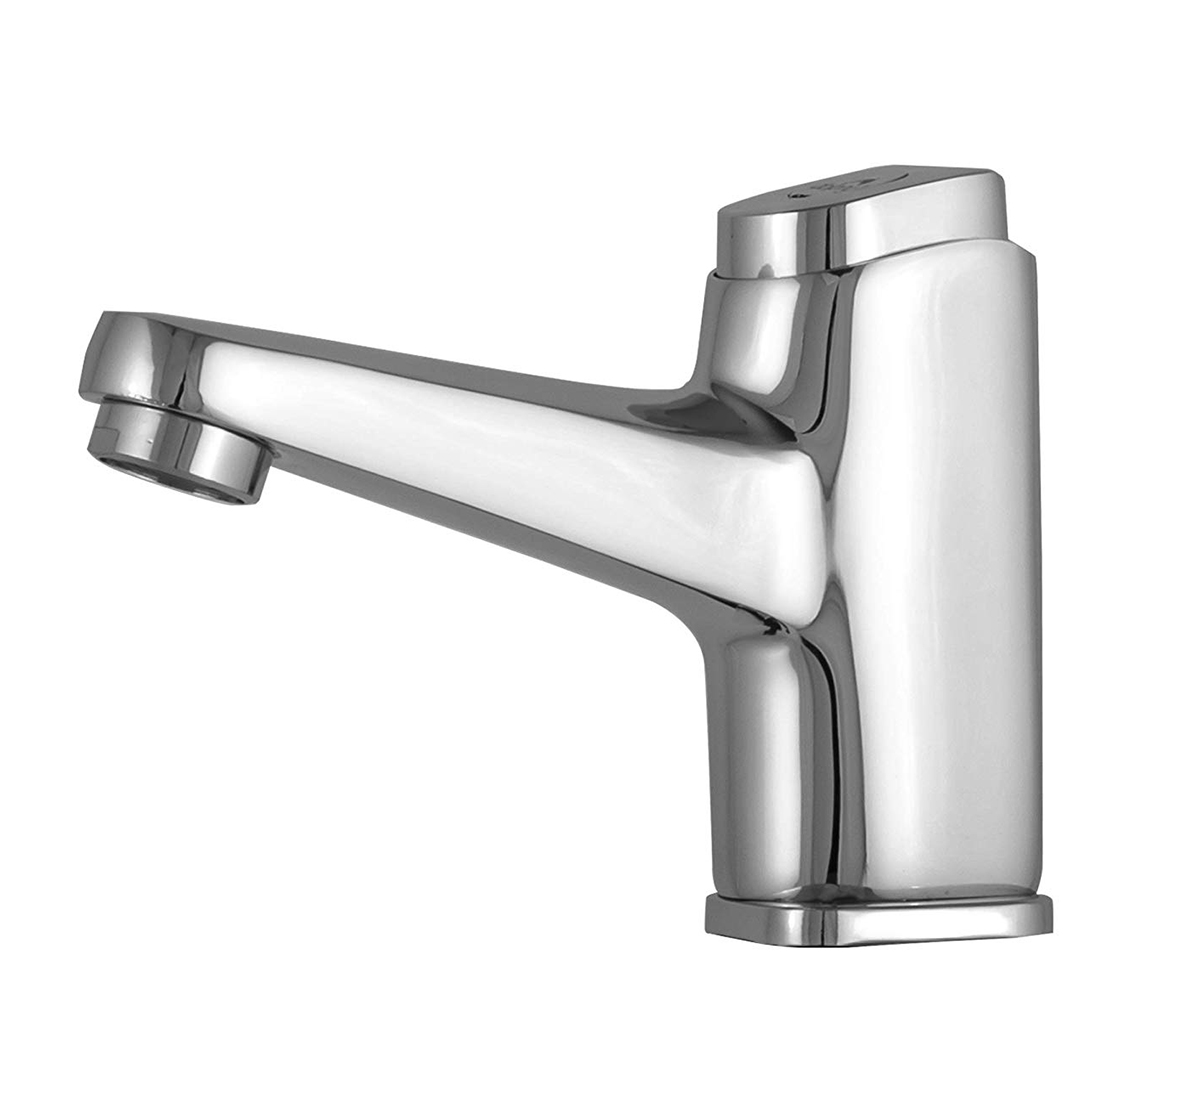 Self-Closing Water Tap